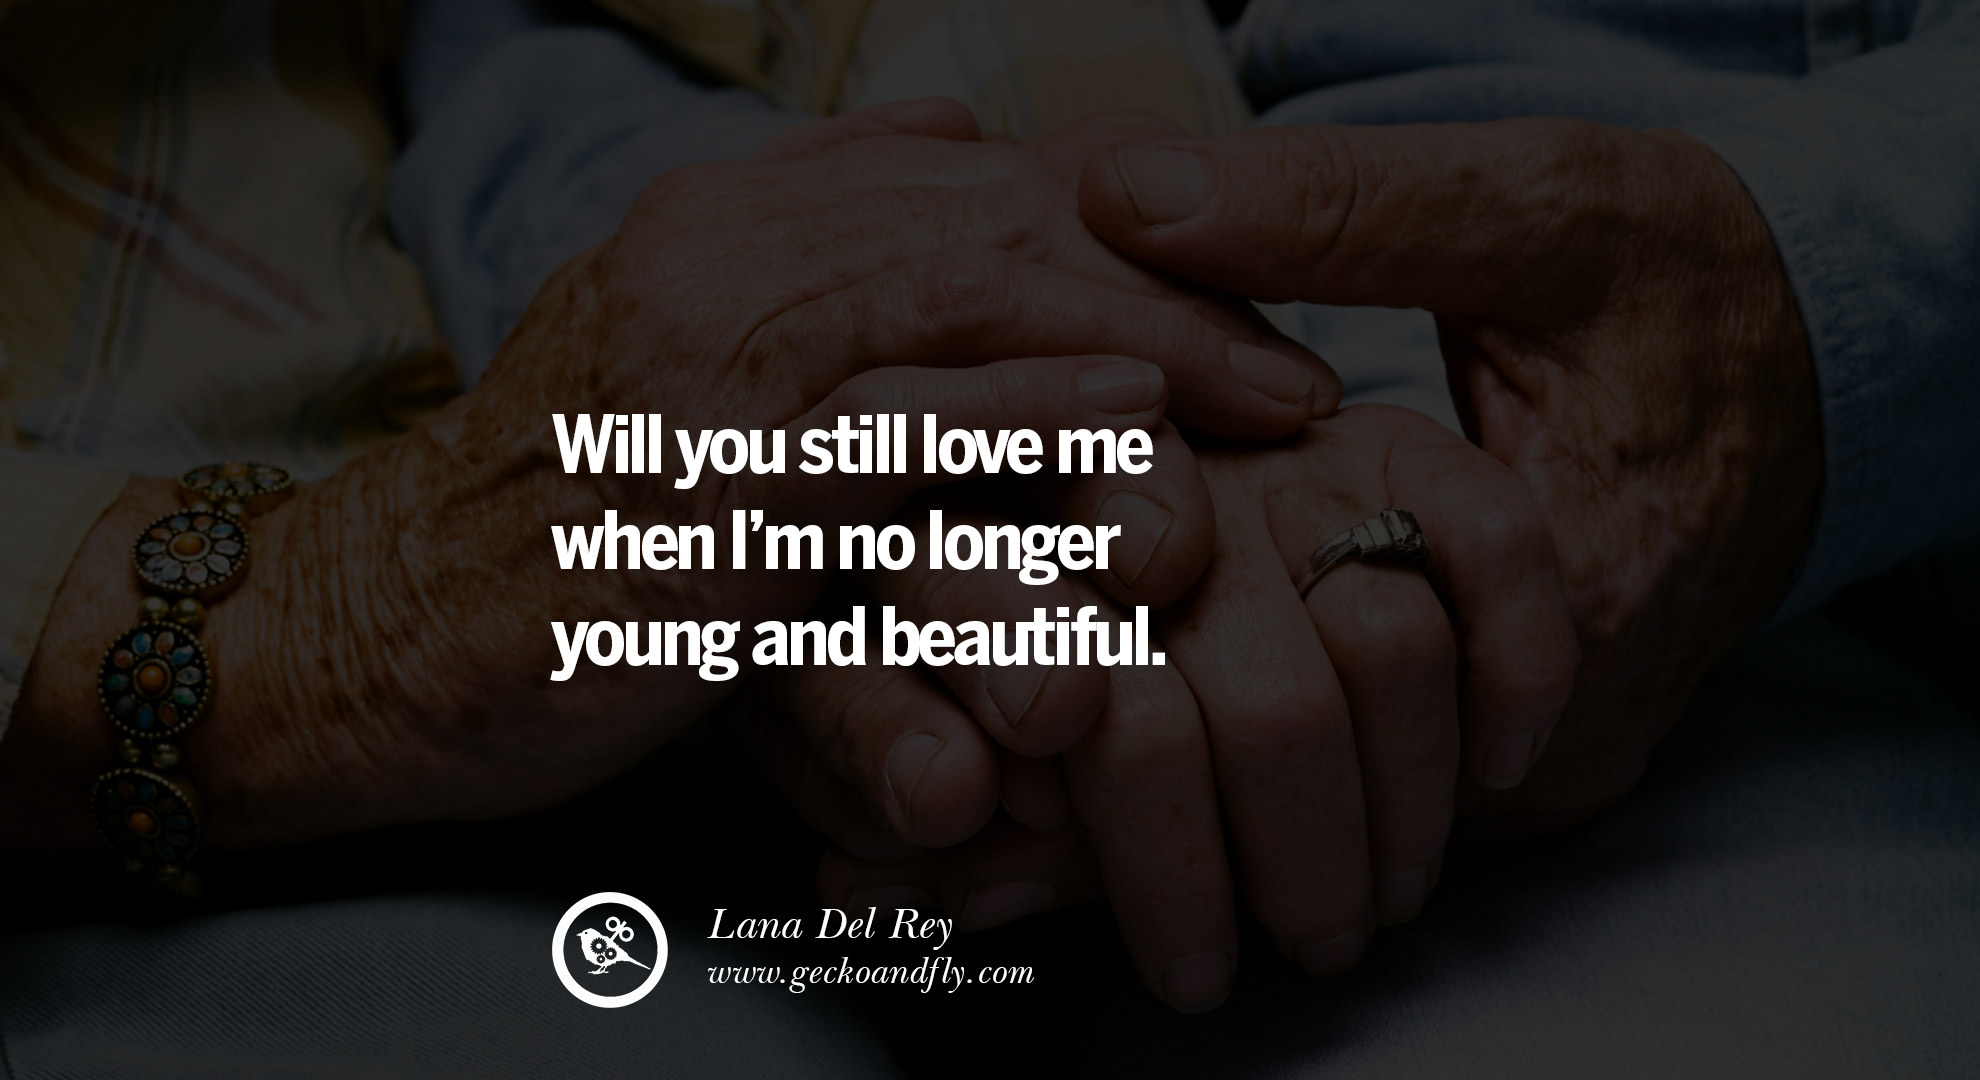 Bob Dylan Quotes Wallpapers 40 Romantic Quotes About Love Life Marriage And